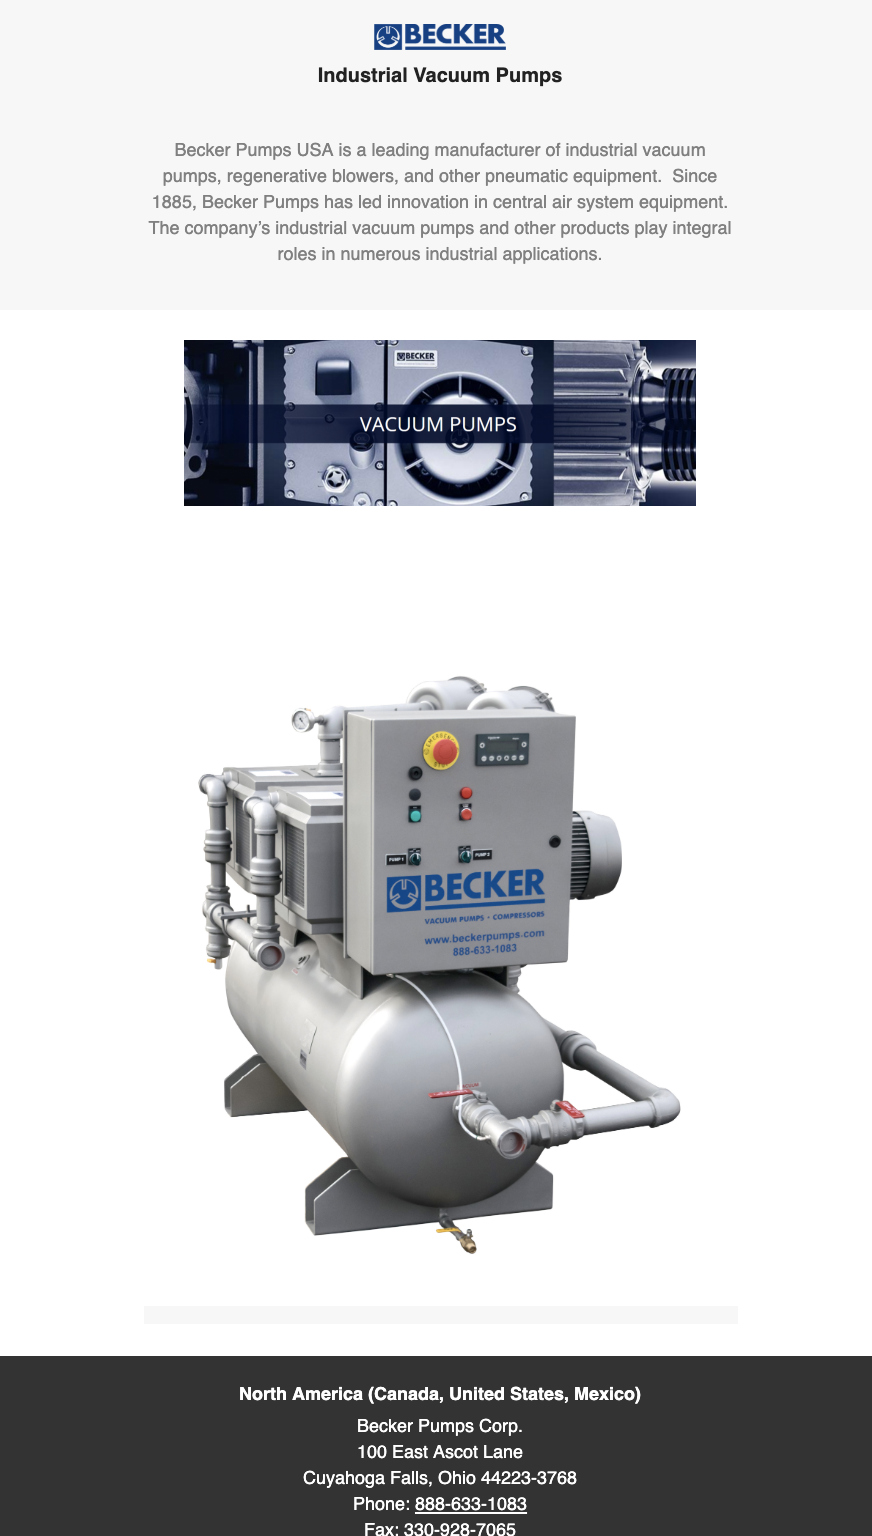 Becker S Industrial Vacuum Pumps Can Maximize The Safety And